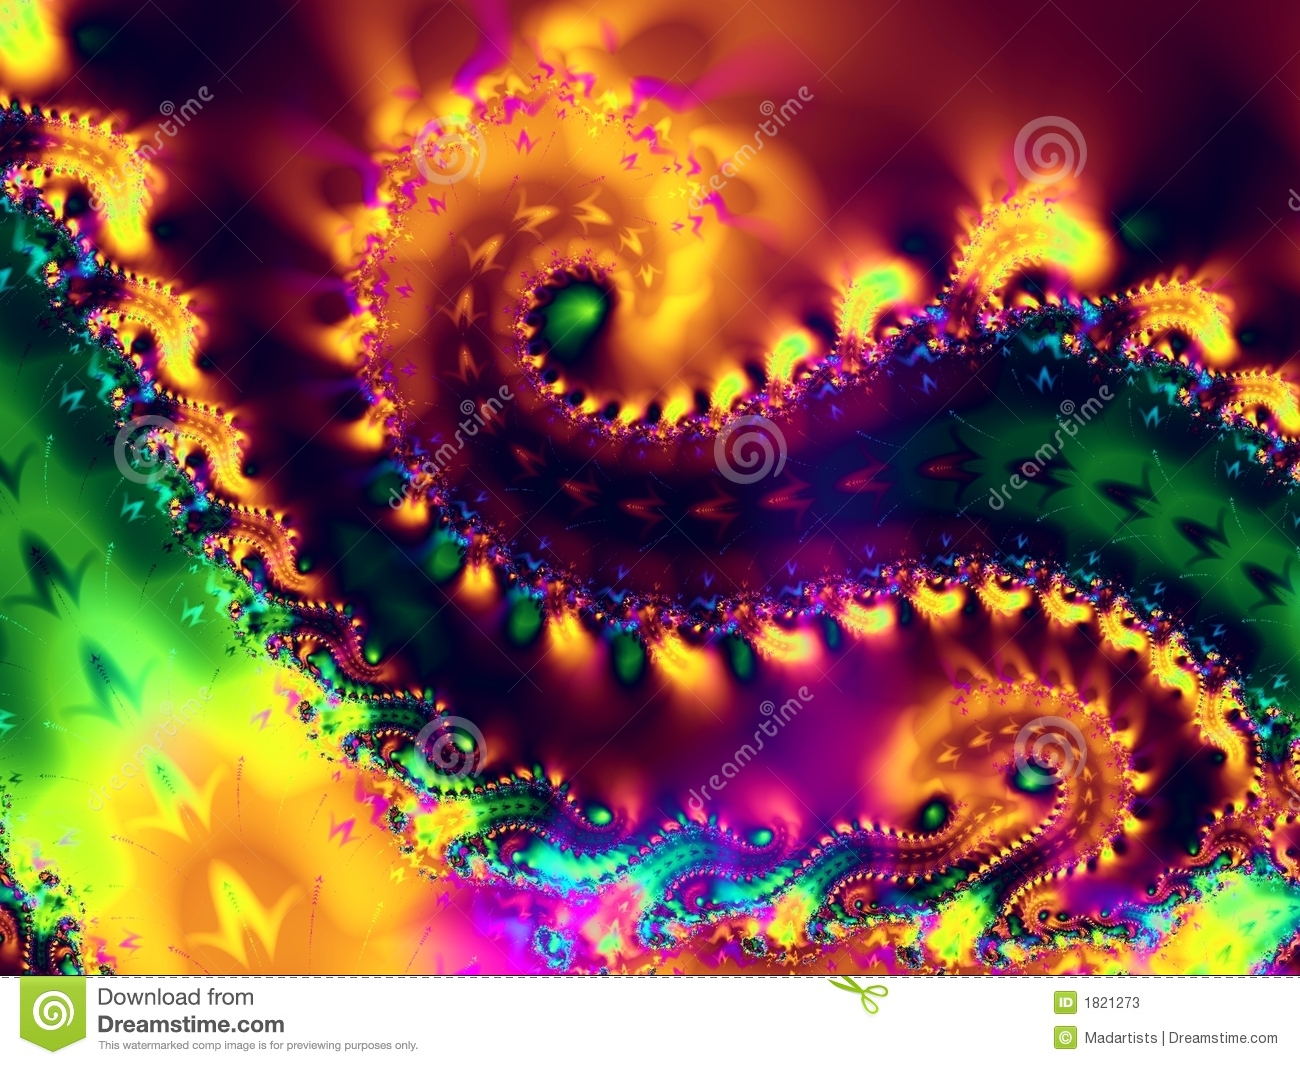 spiral swirls fractal texture stock image - image of cool, creative